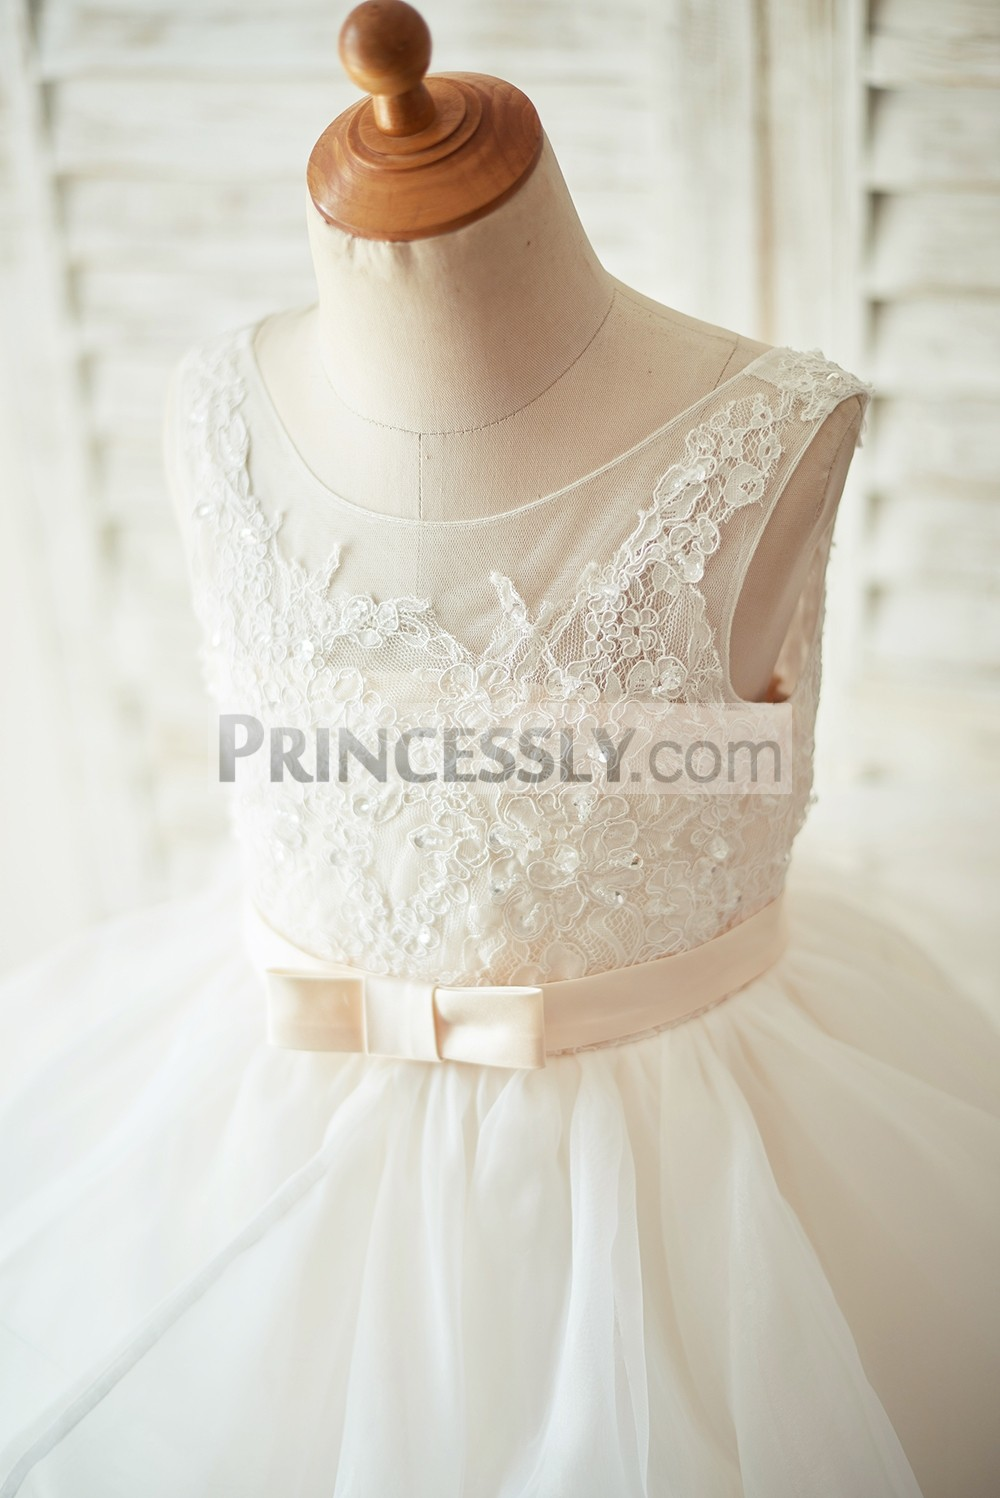 Beaded ivory lace bodice with champagne belt / bow